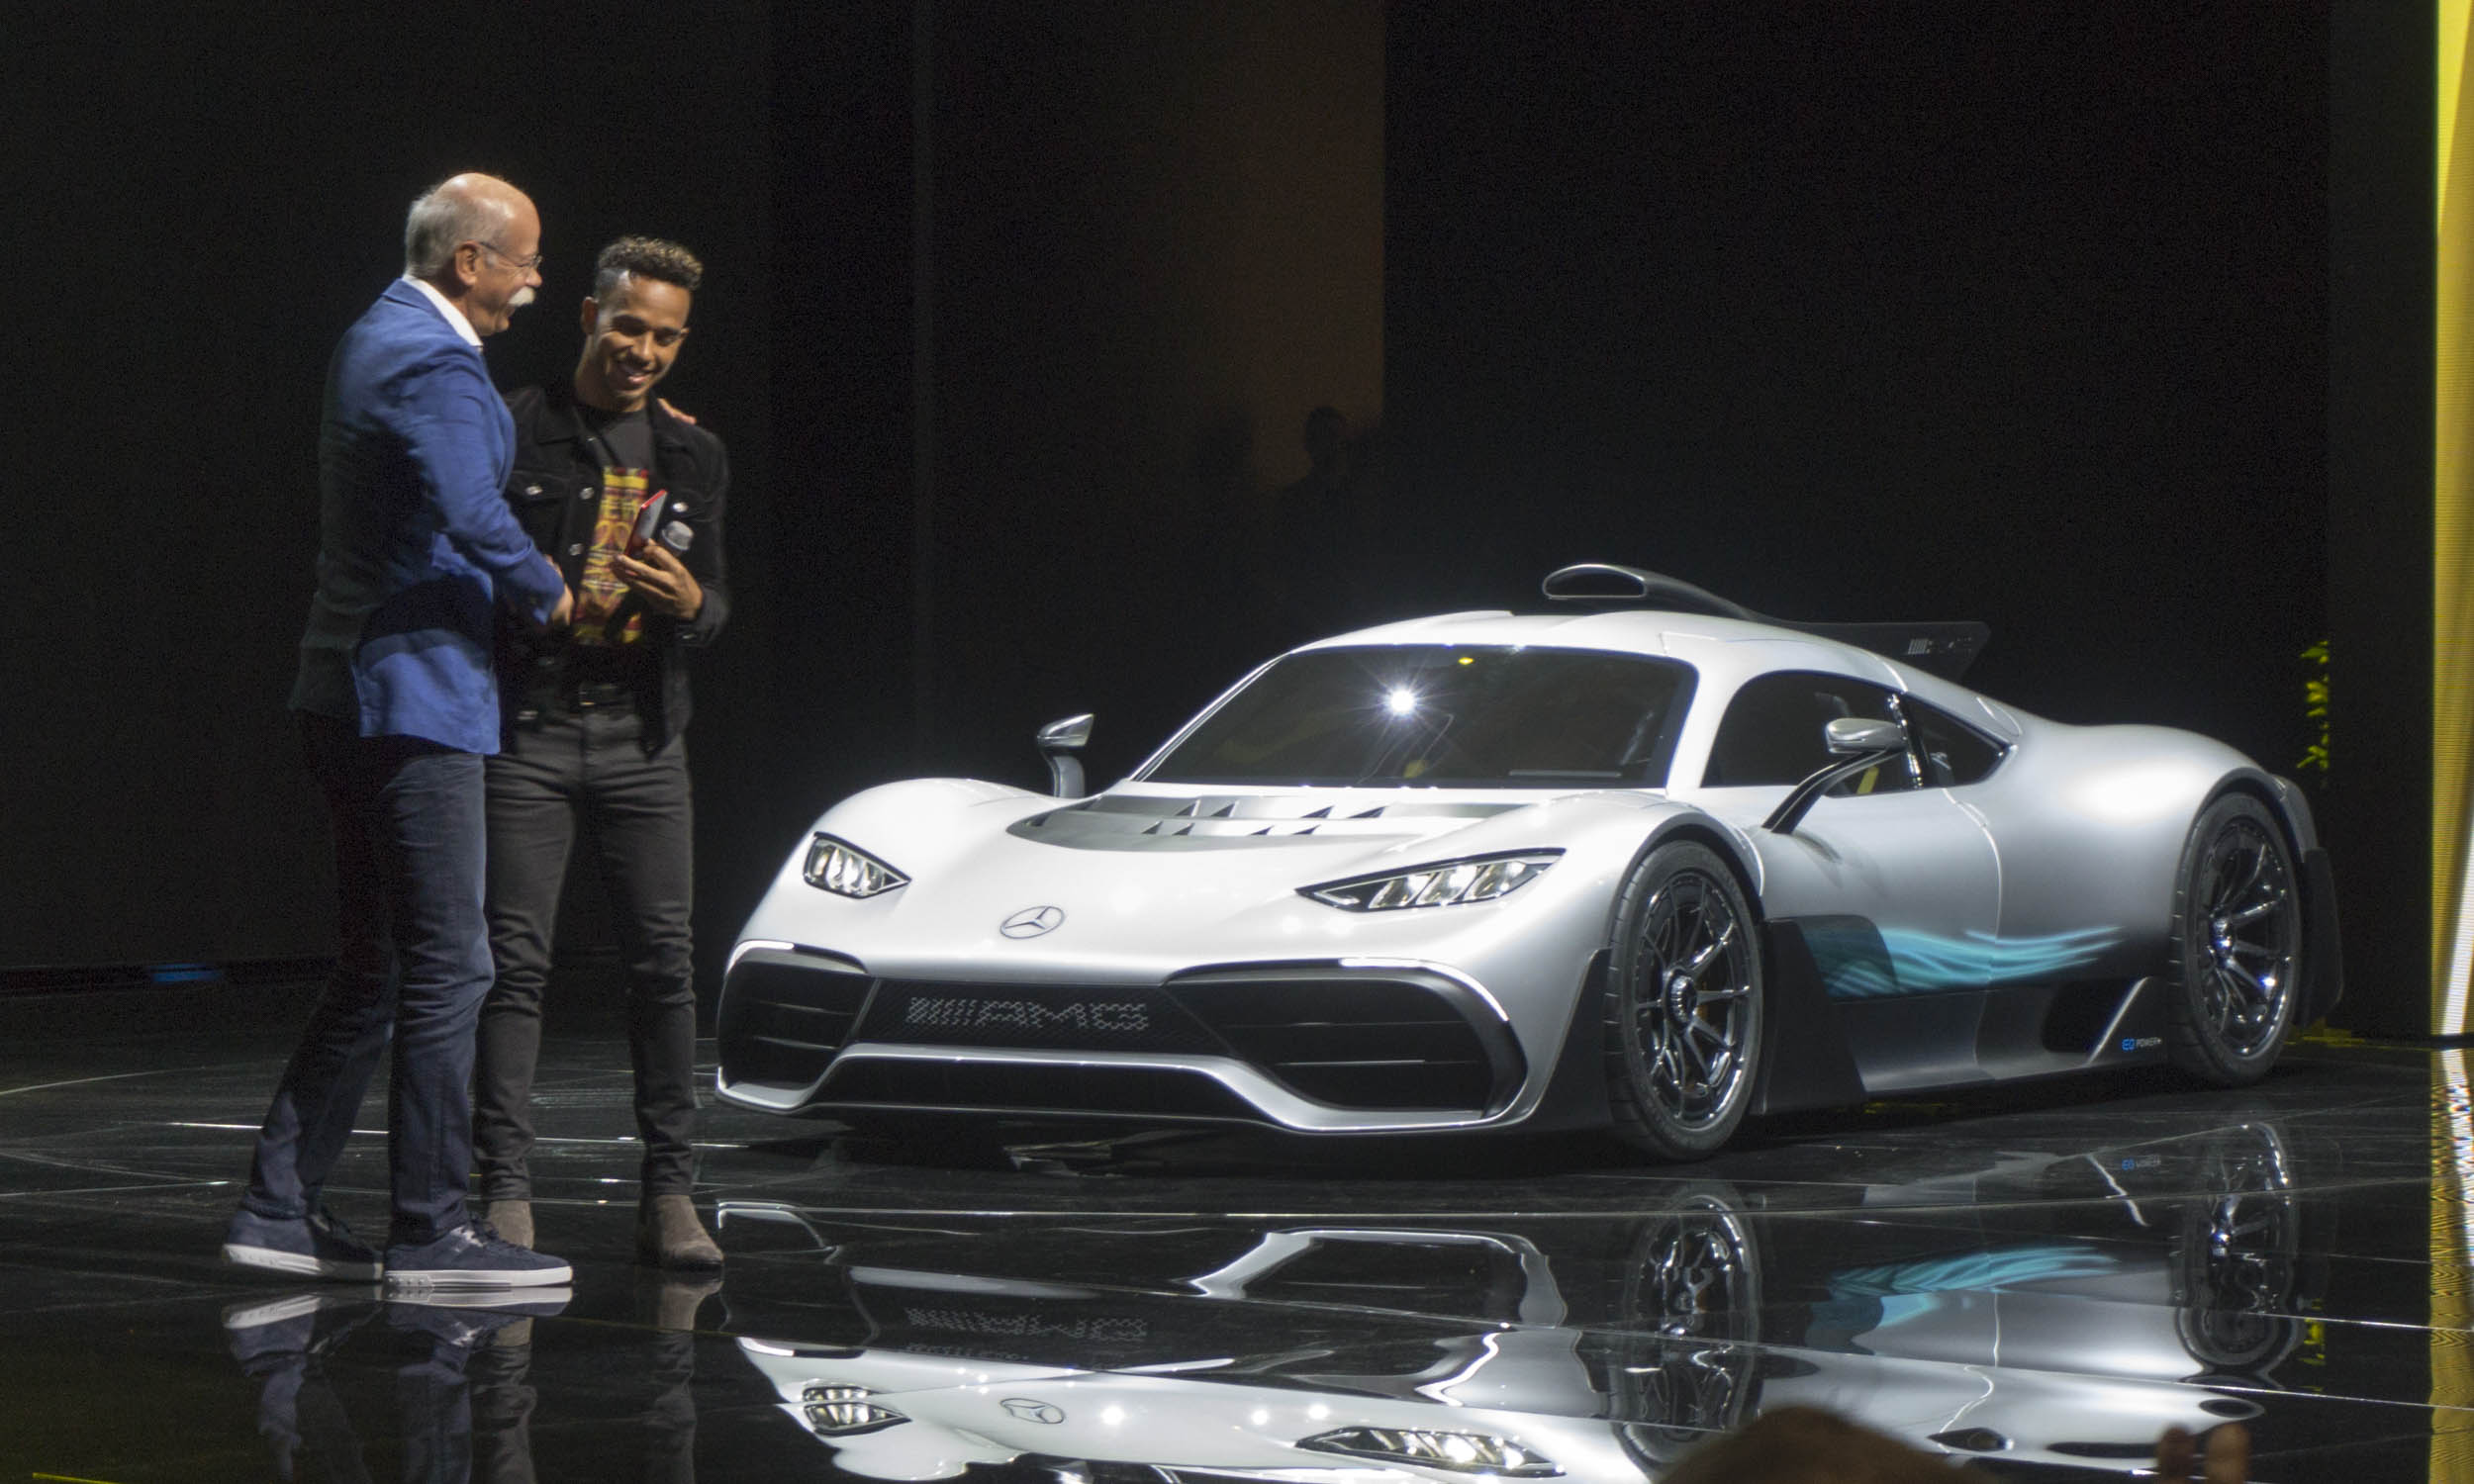 6. Mercedes AMG Project One